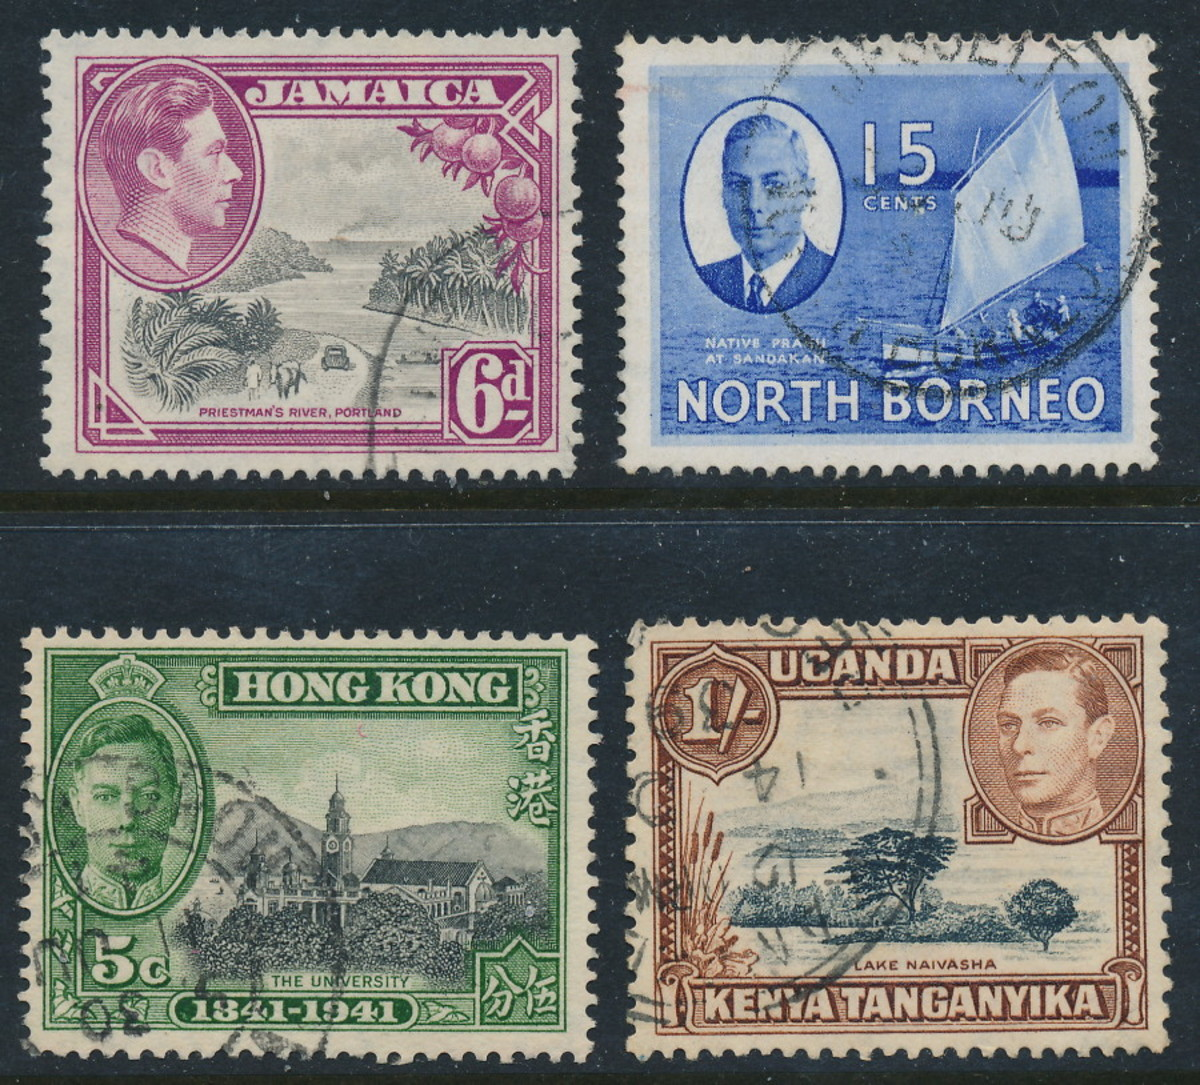 British Commonwealth stamps from the reign of George VI